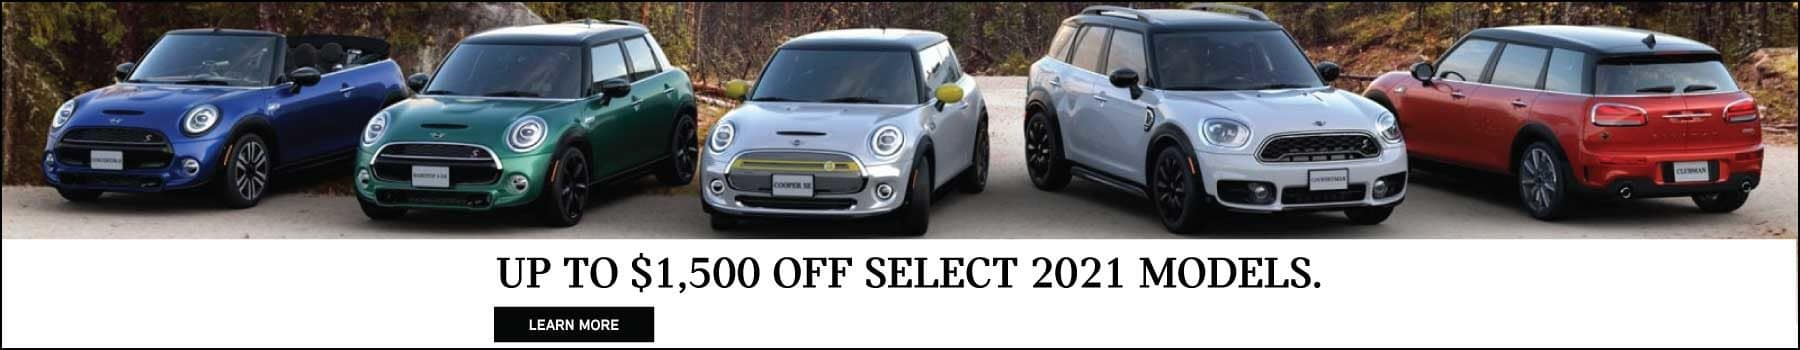 UP TO $1,500 OFF SELECT 2021 MODELS.